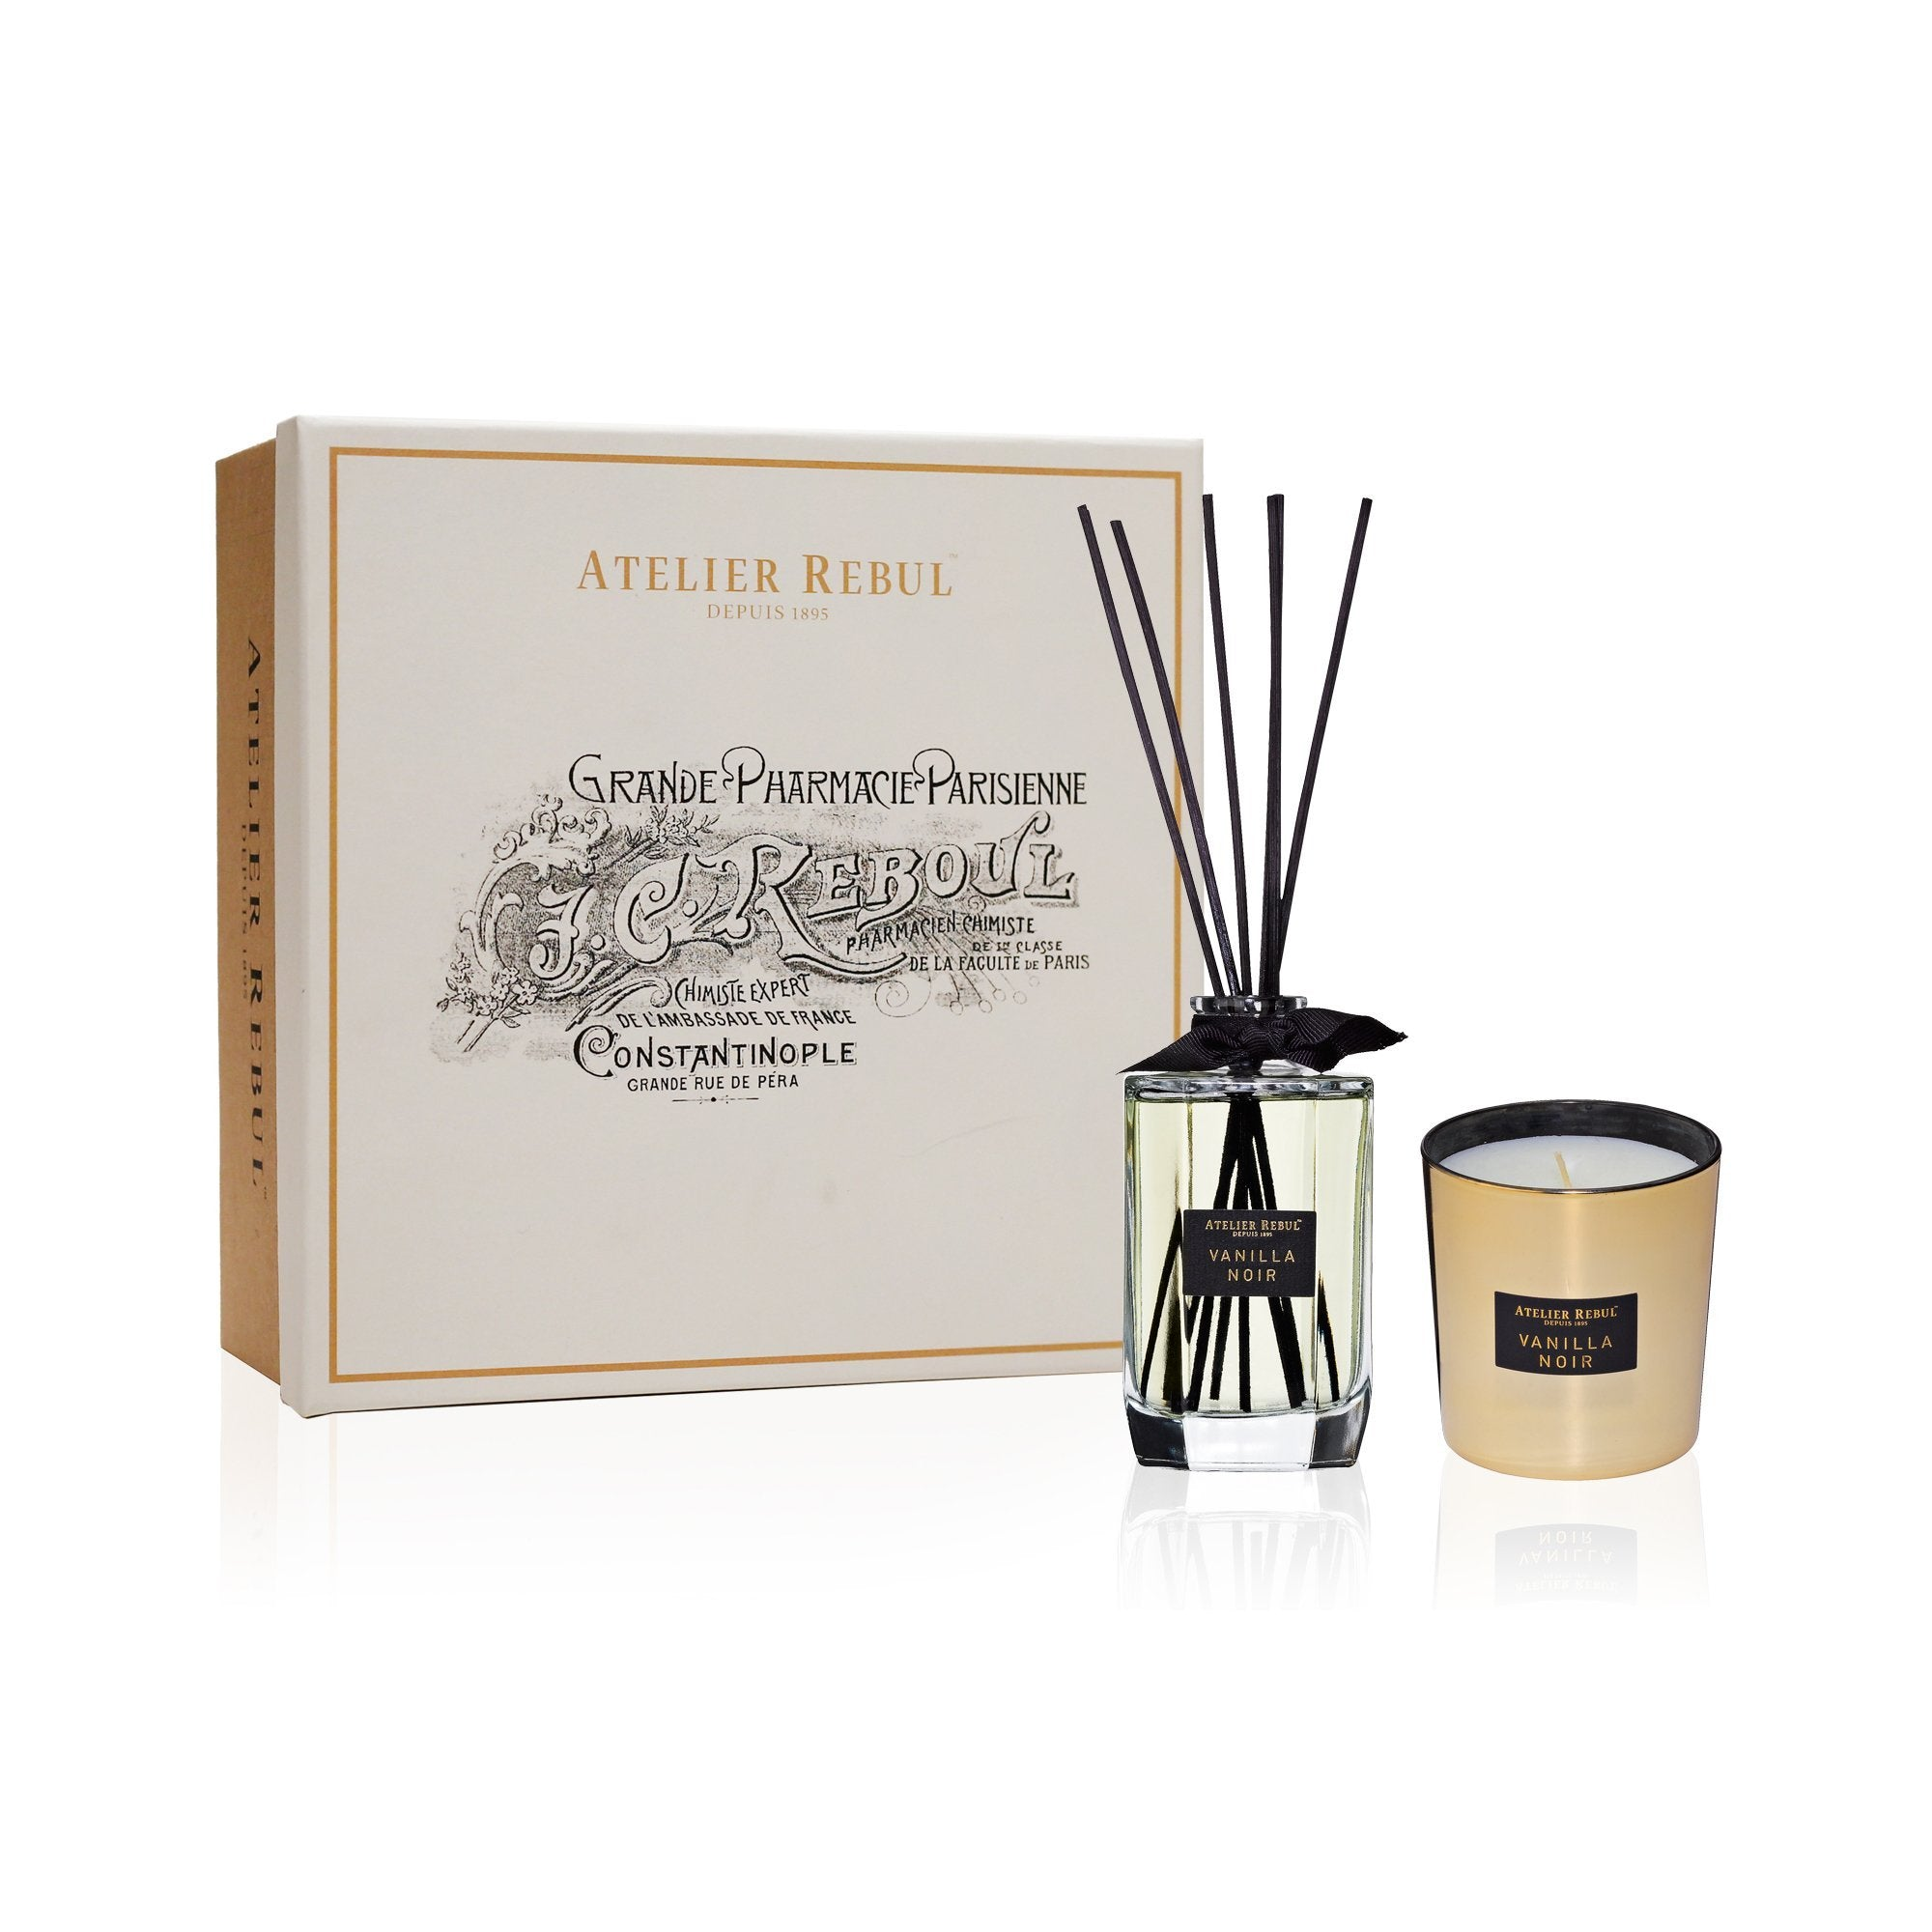 Vanilla Noir Fragrance Sticks and Scented Candle Giftset - Atelier Rebul